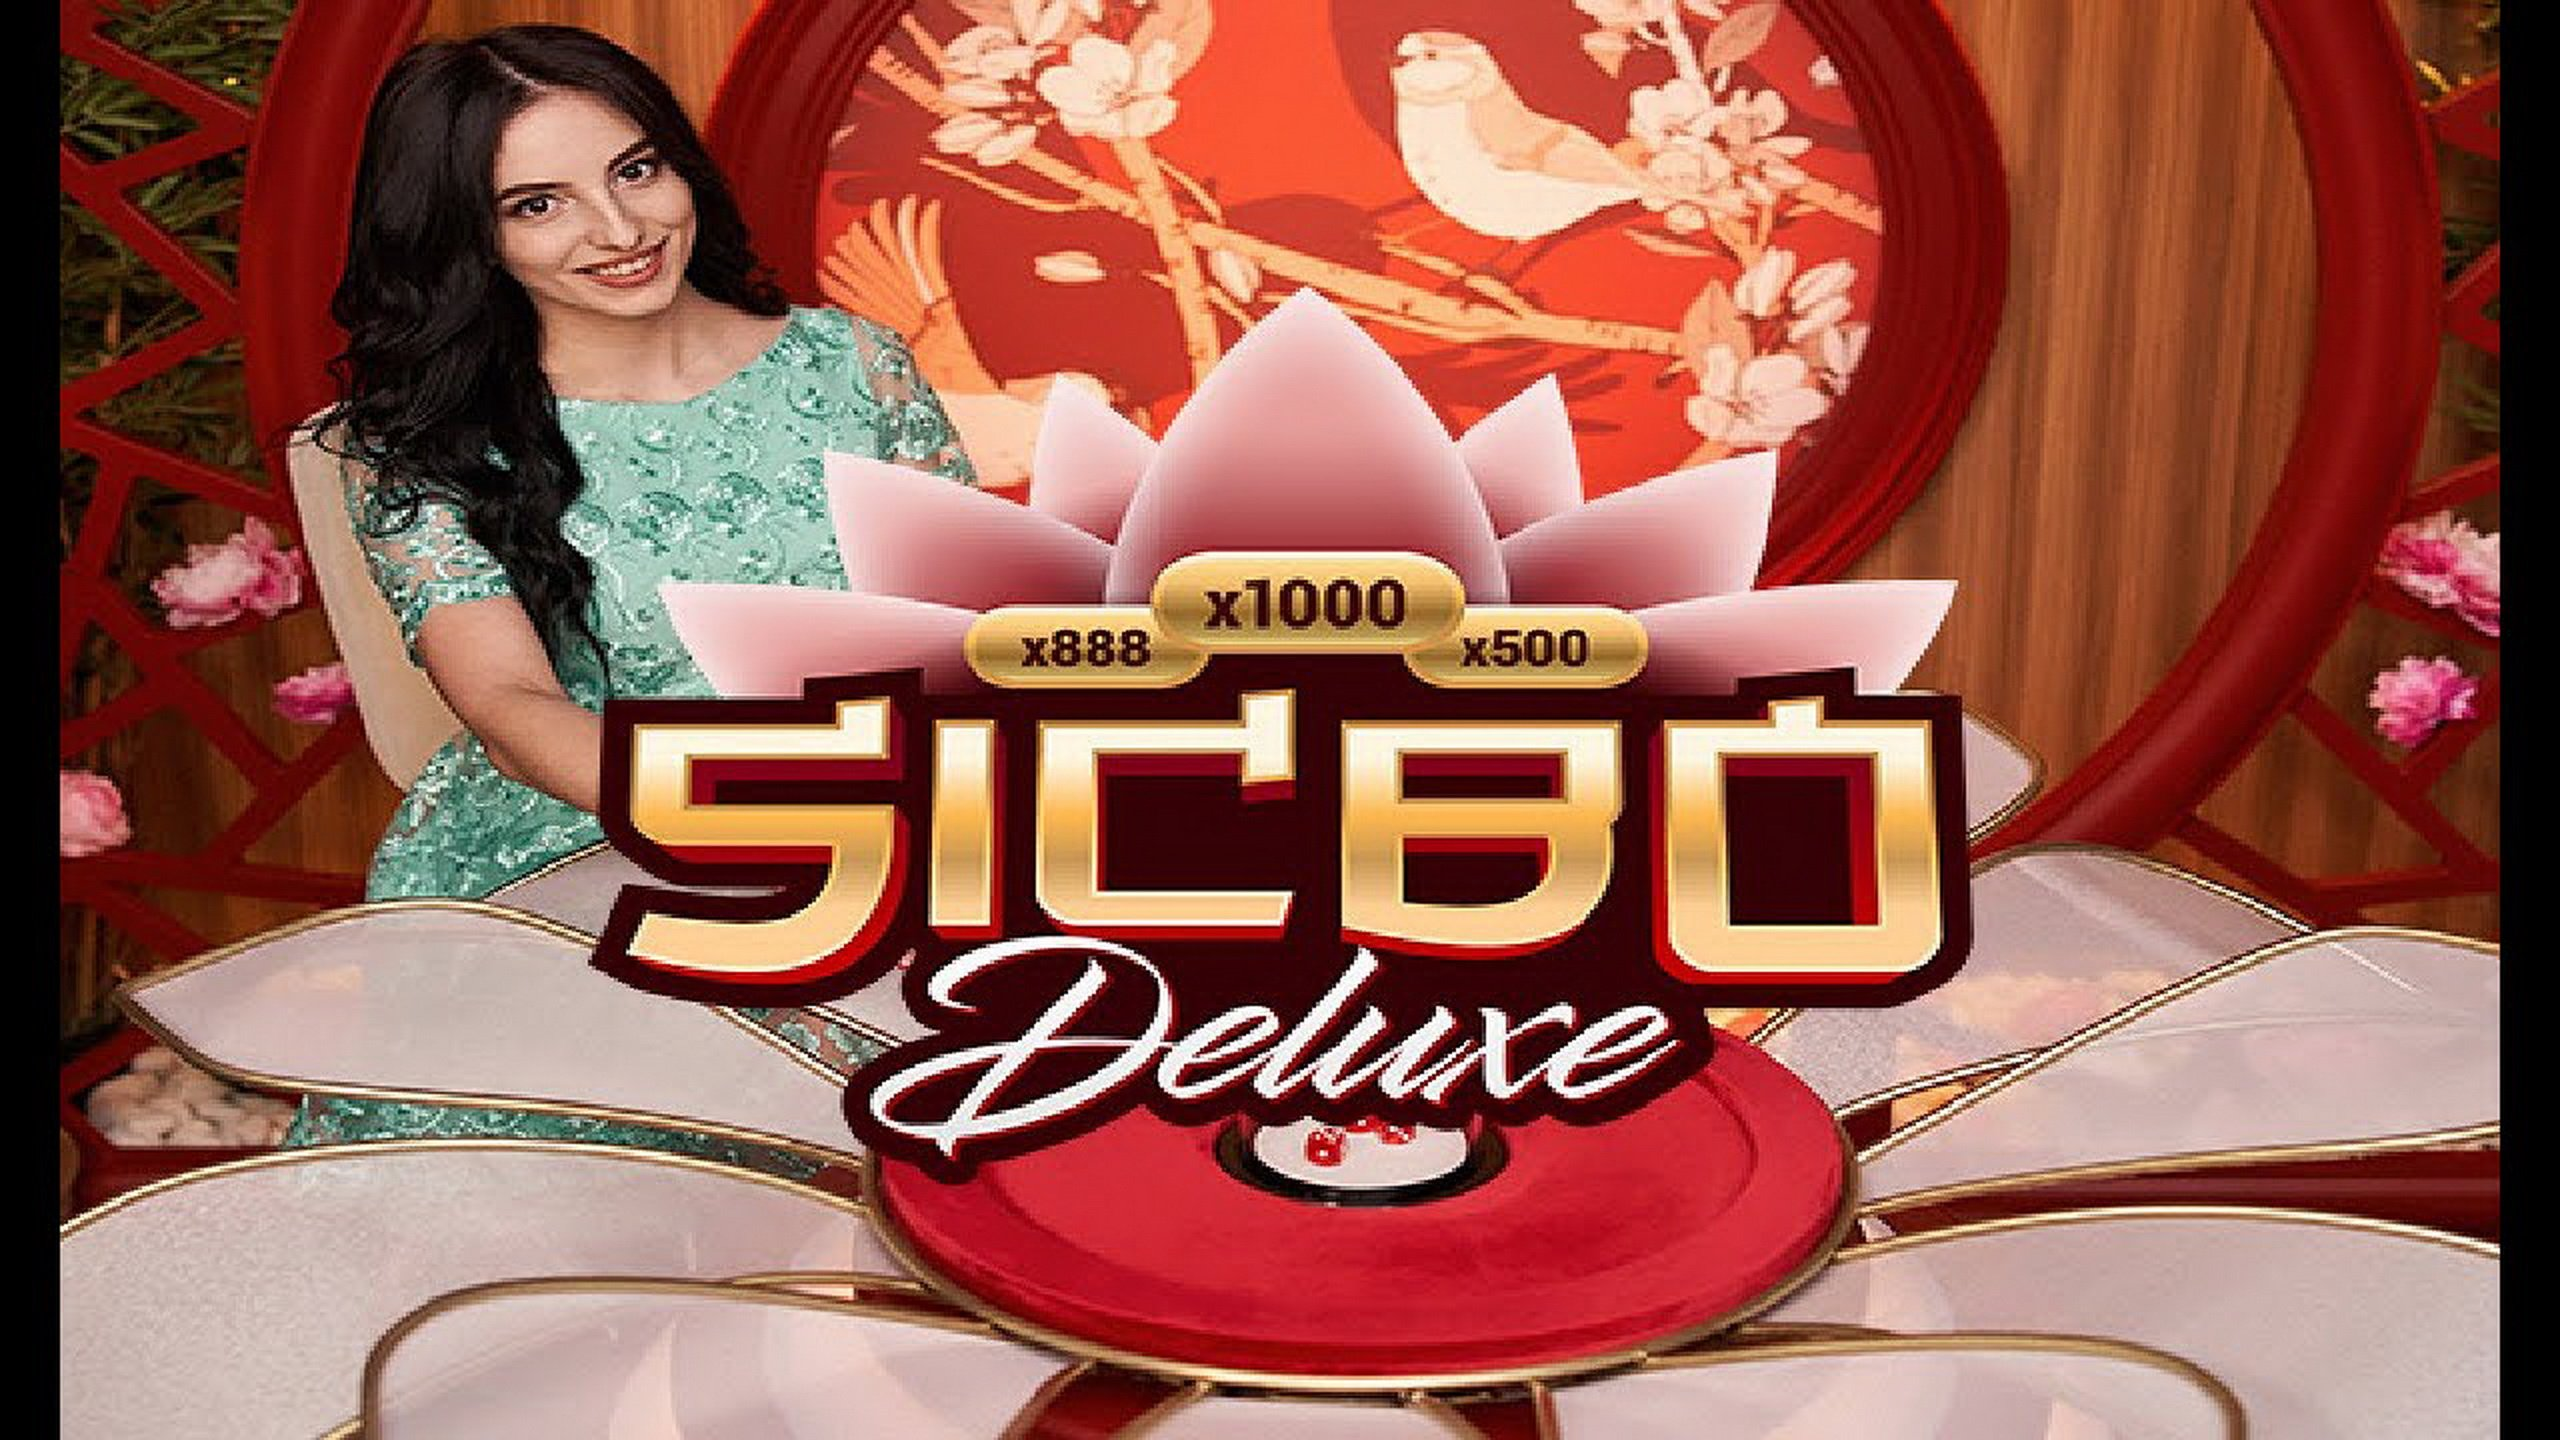 The Sicbo Deluxe Online Slot Demo Game by Playtech